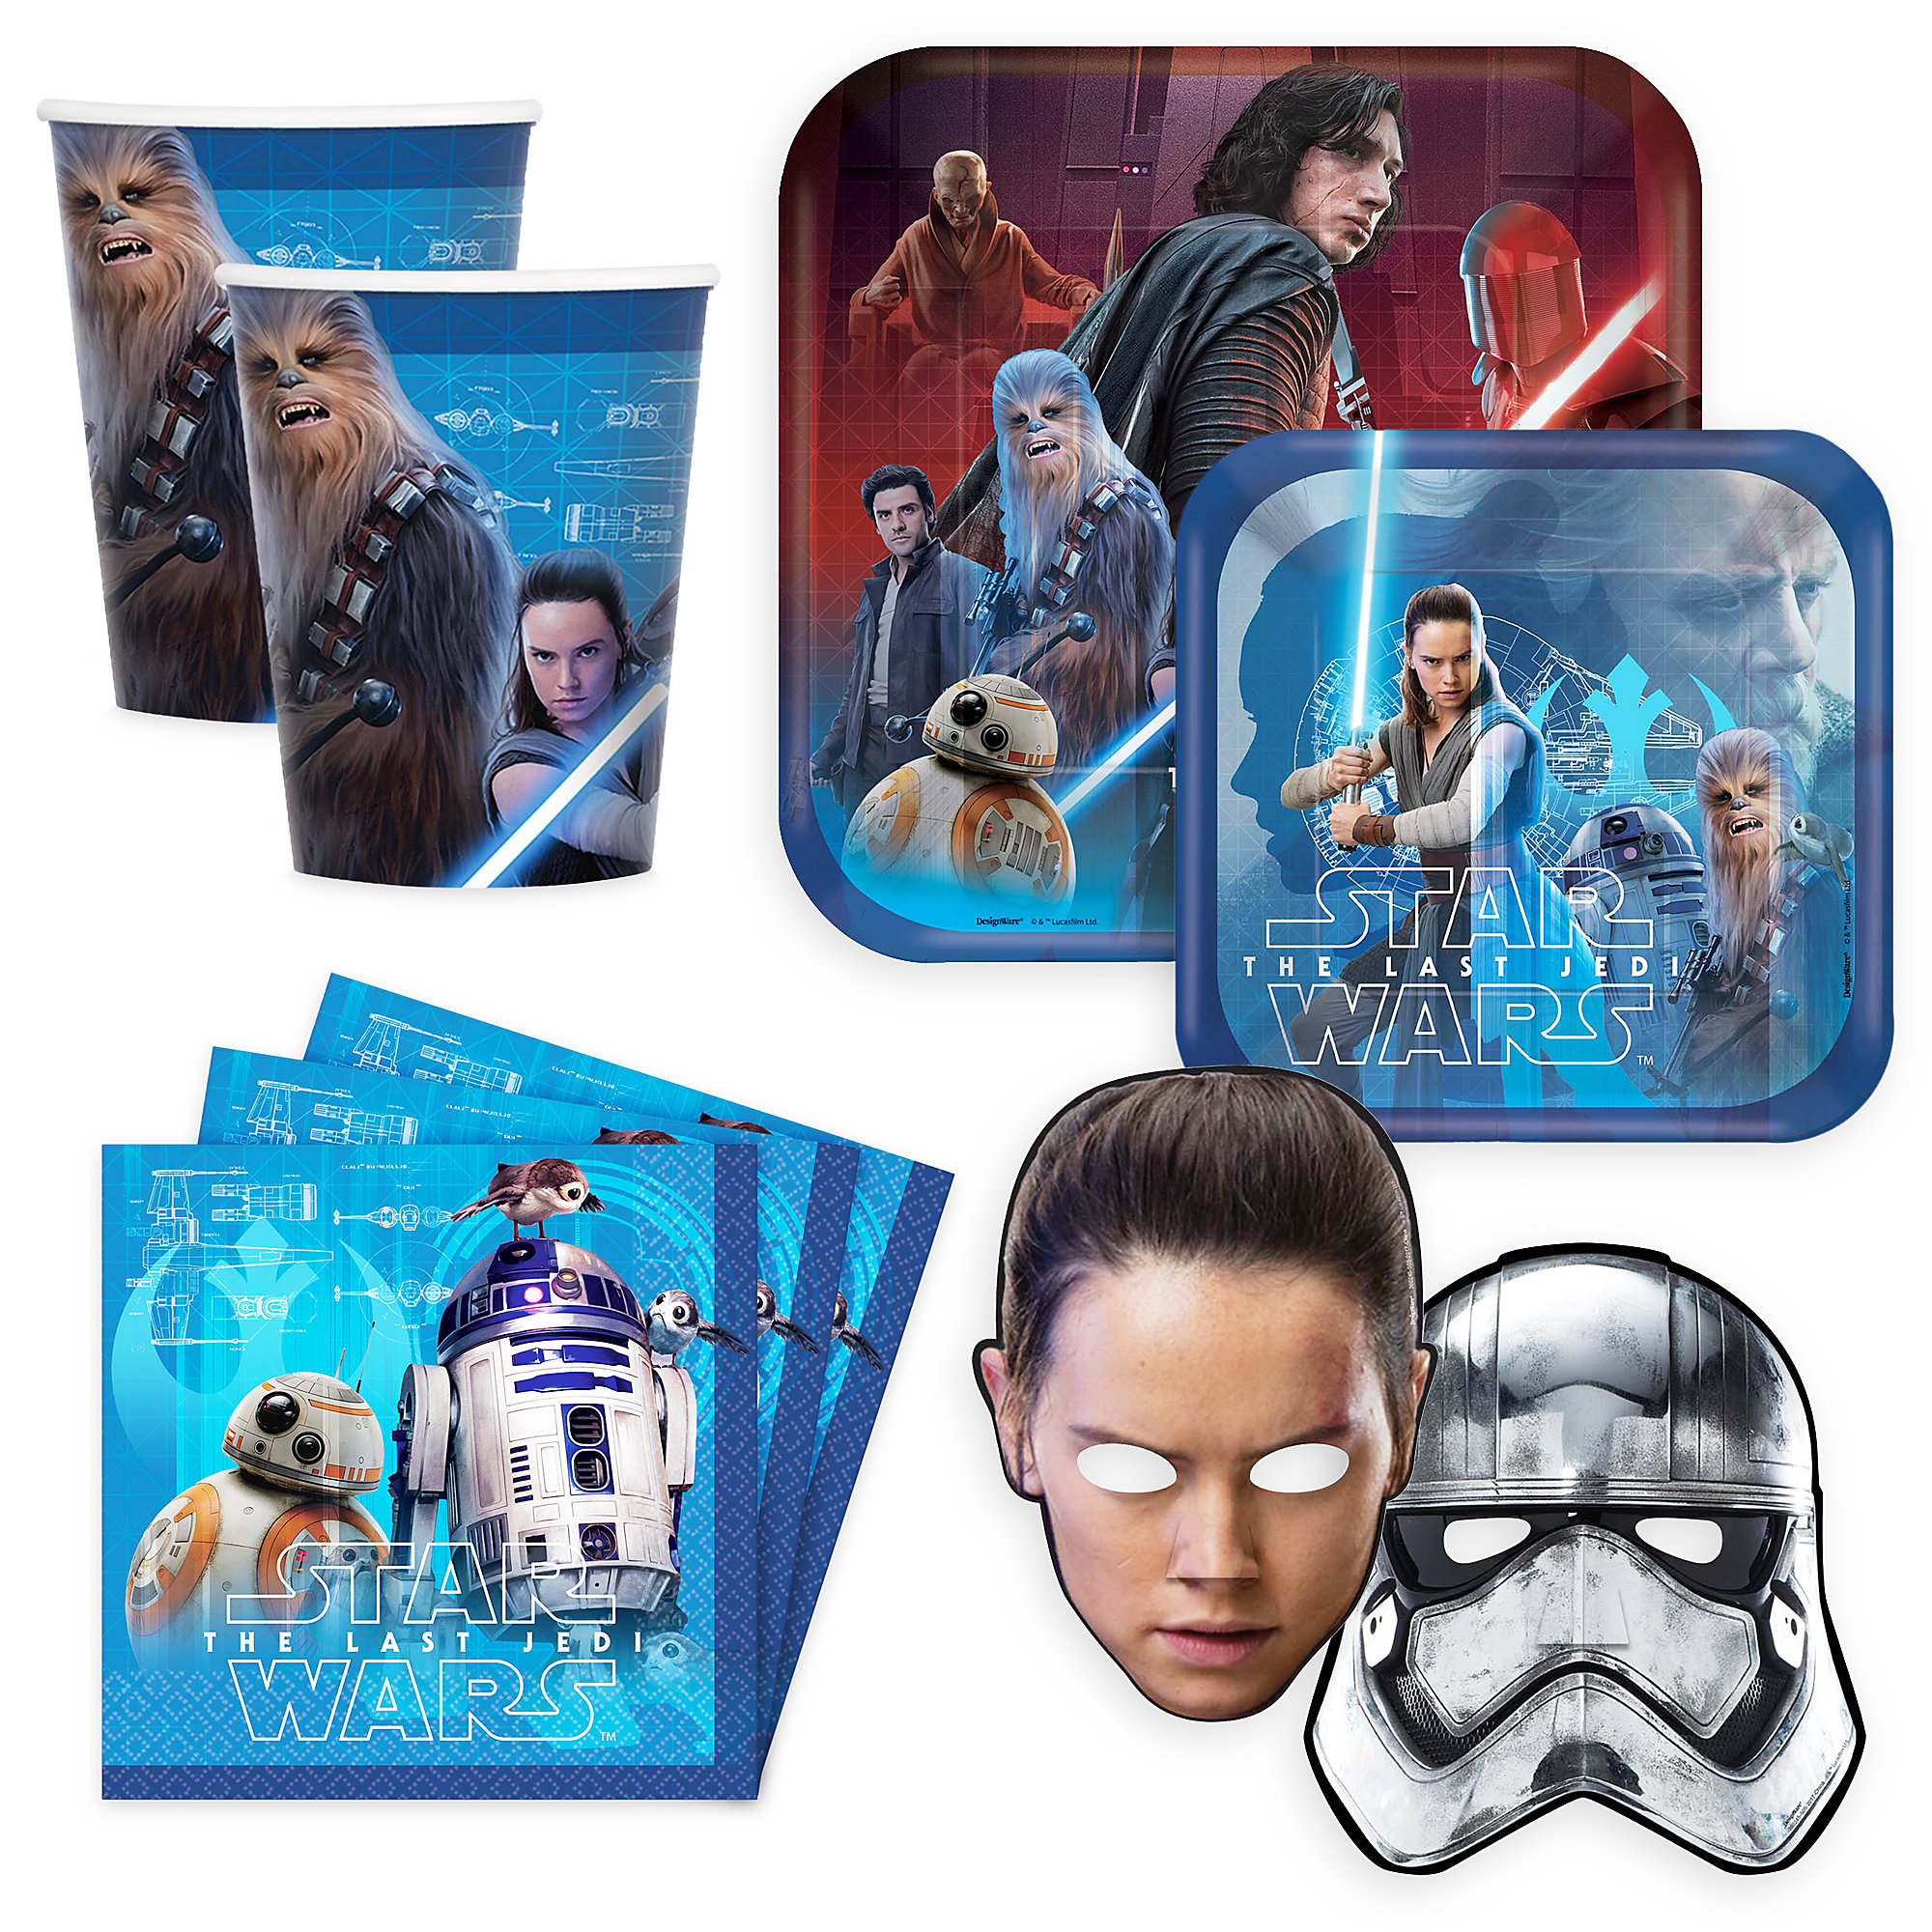 Star Wars The Last Jedi Disney Party Collection